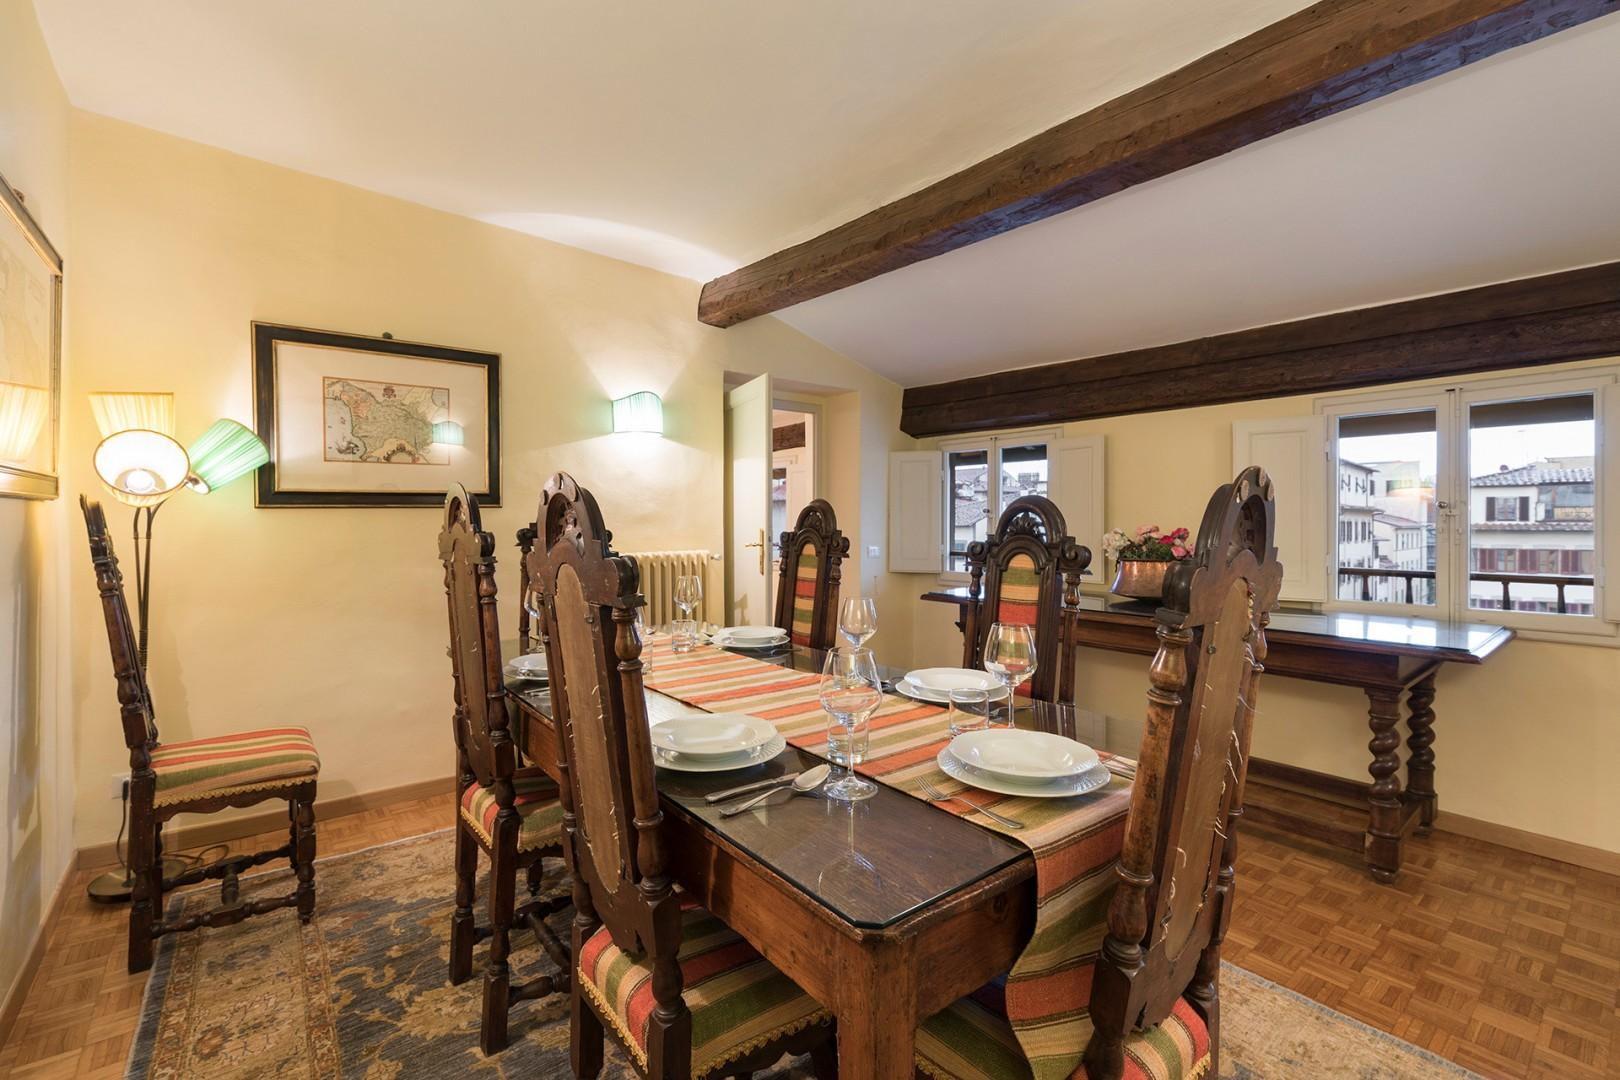 Tuscan wood dining table can seat 8 to 10 people.